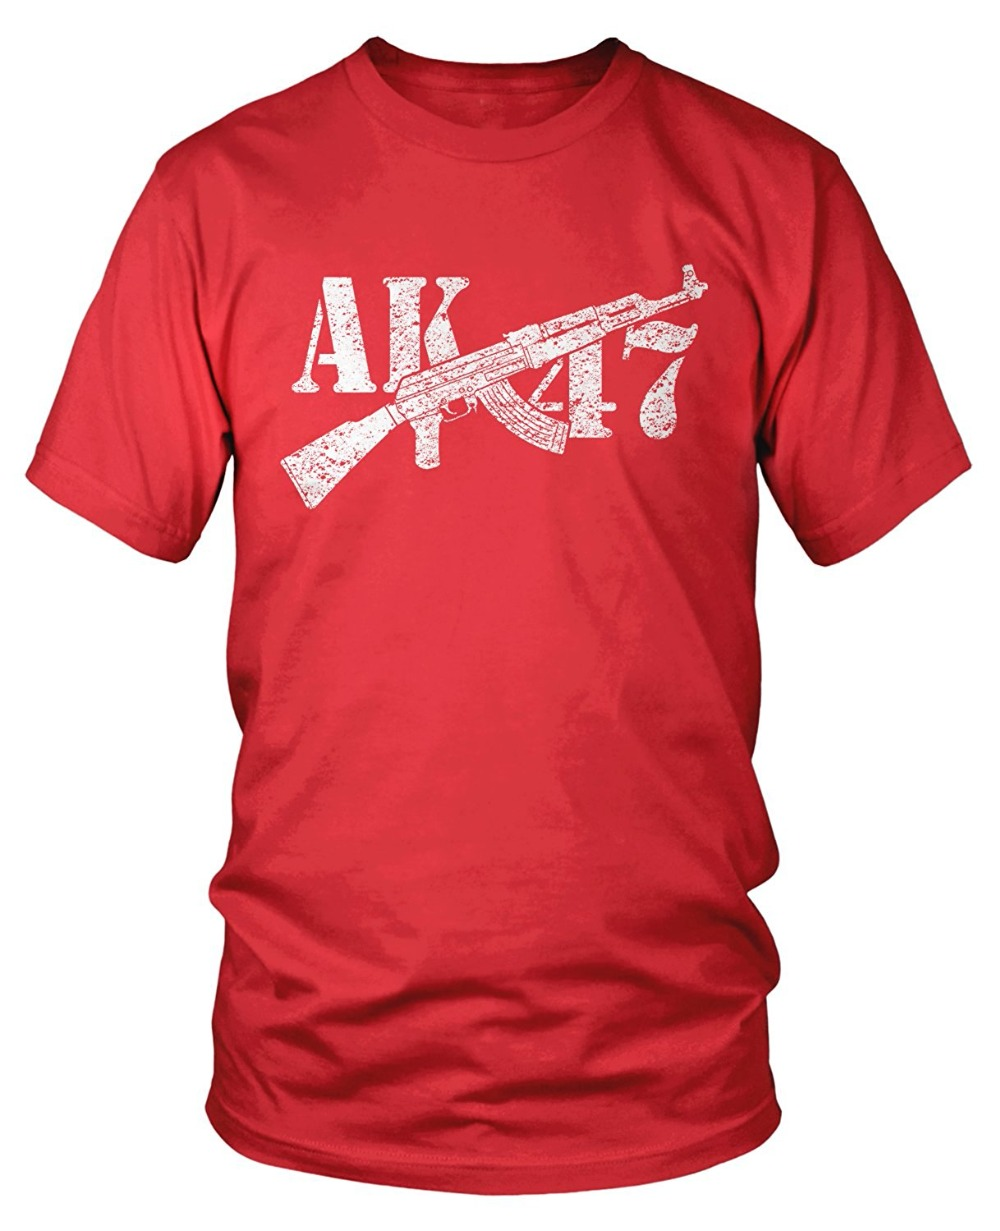 Design Your Own Shirts Online: Design Your Own T Shirt Online Printing Men Men's Faded Ak